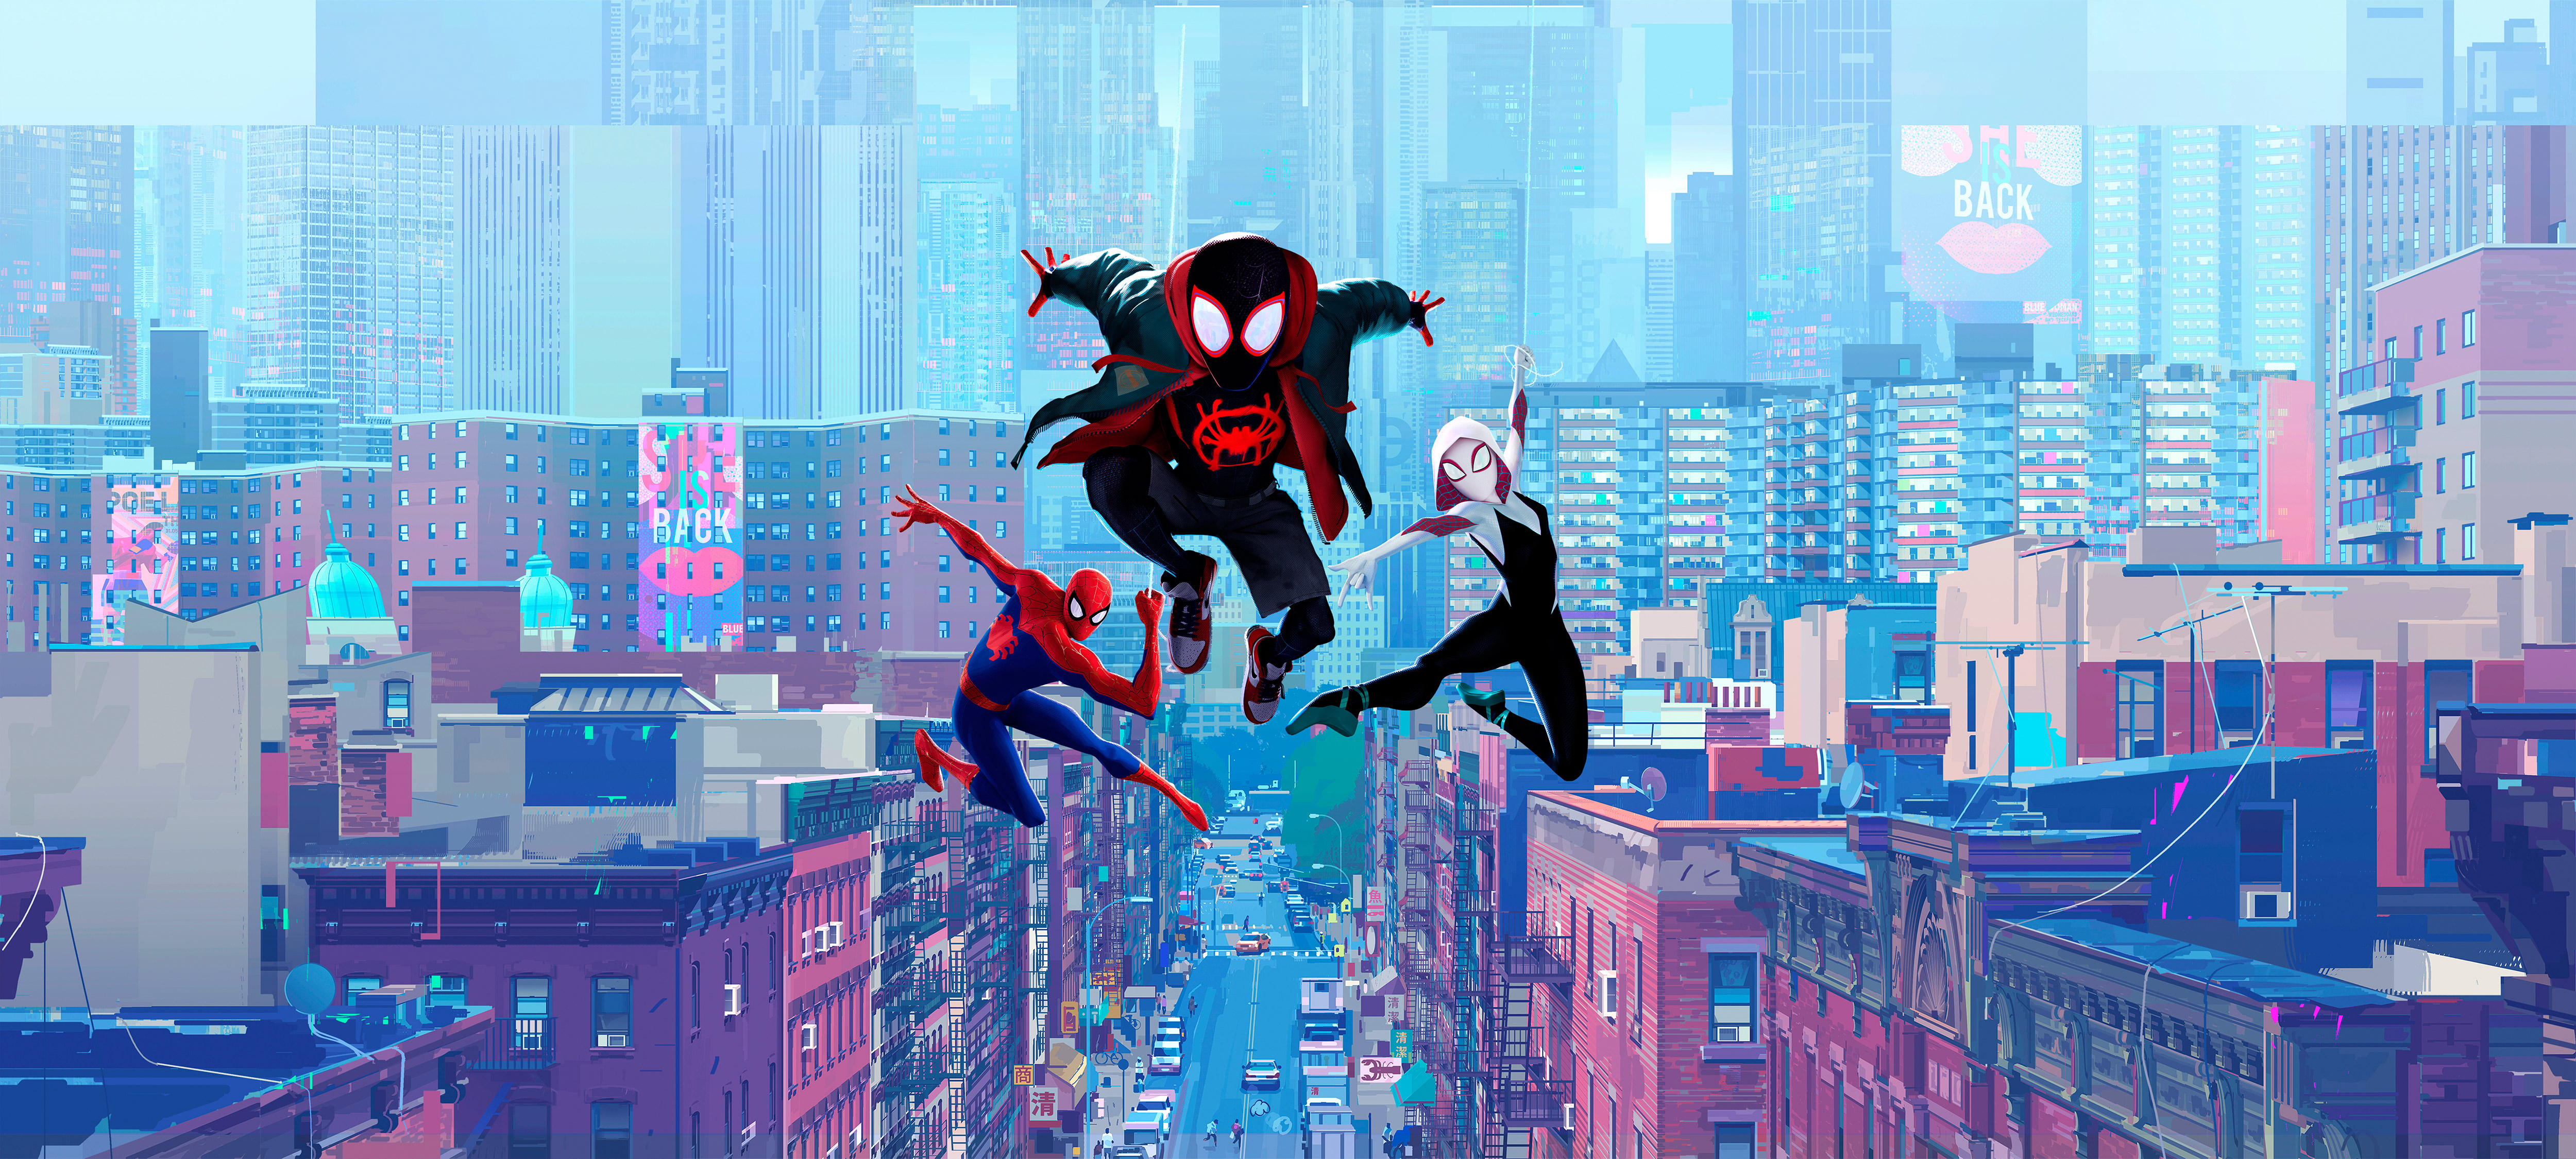 Miles Morales, Gwen, Animation, Jumping, Buildings, - Spider Man